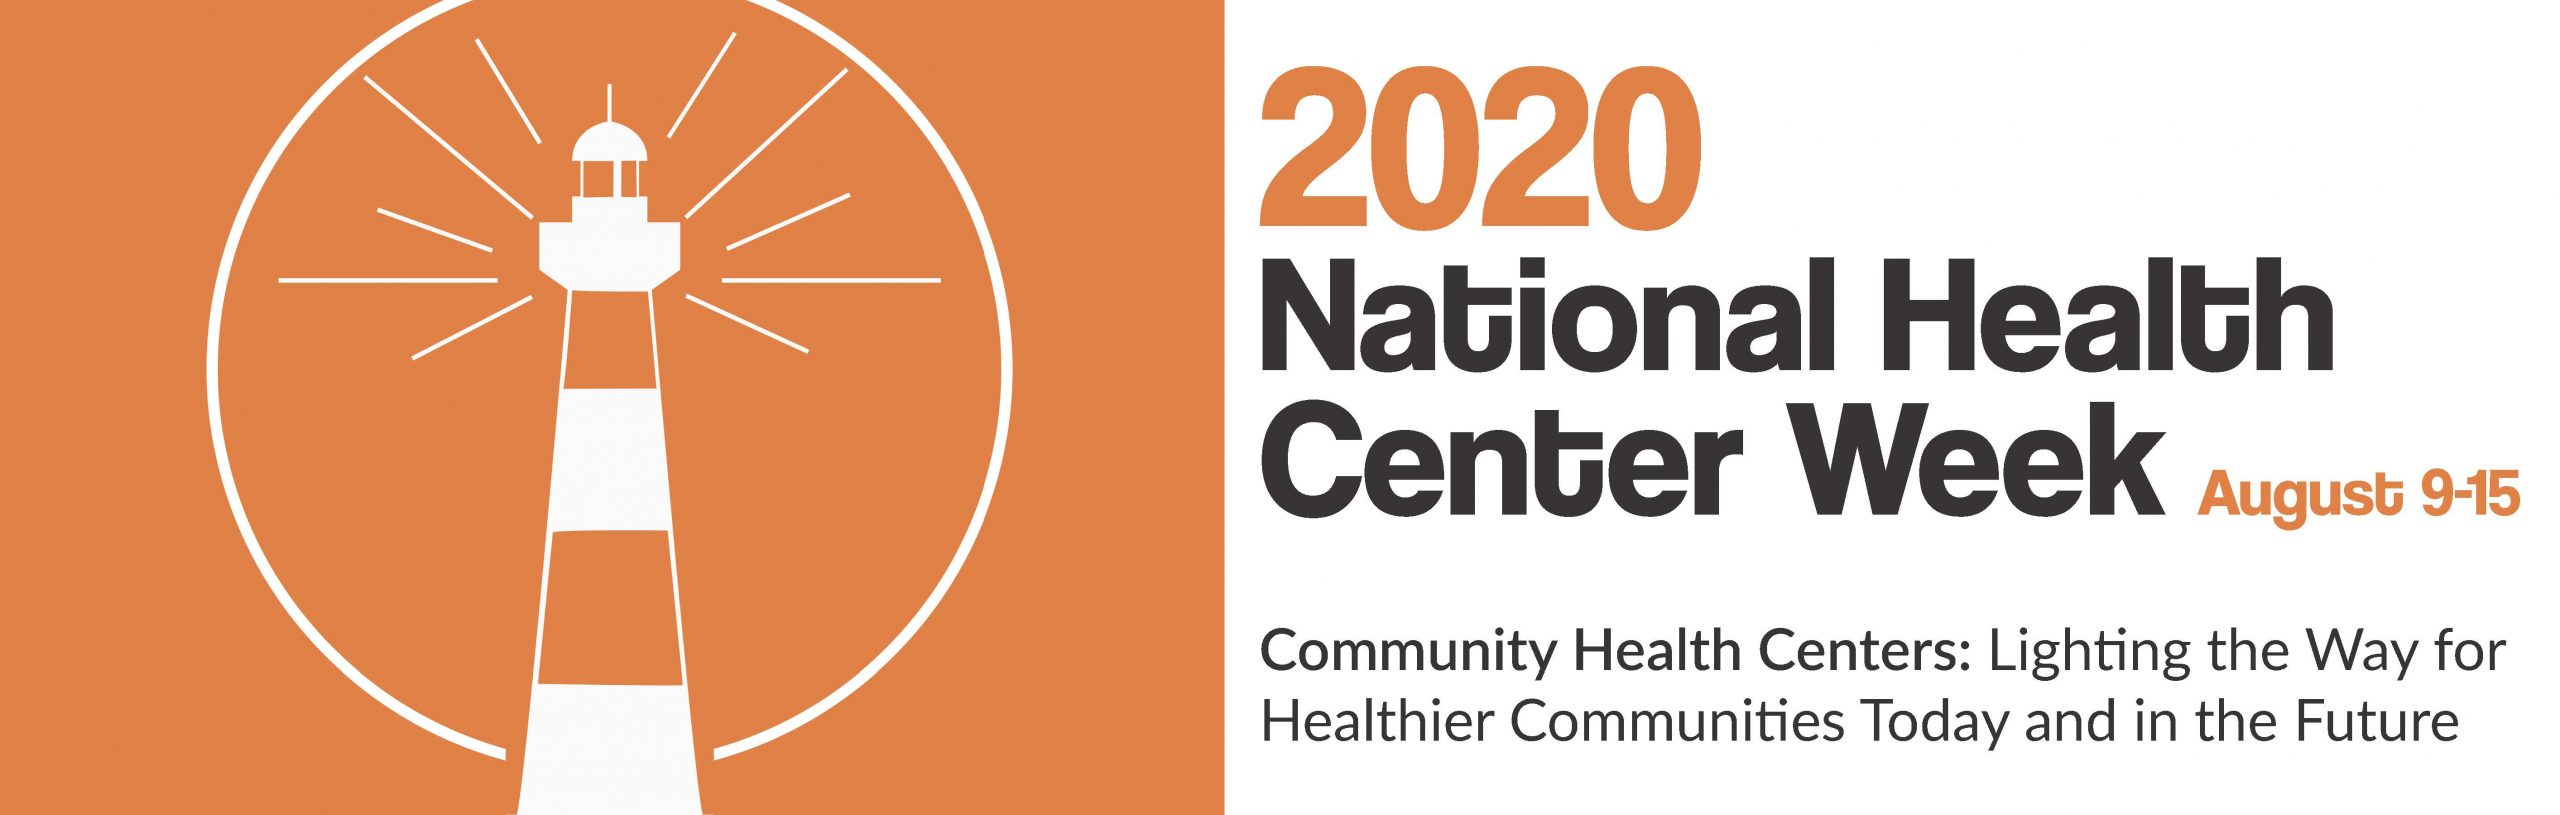 Rotating Web Banner 2020 National Health Center Week